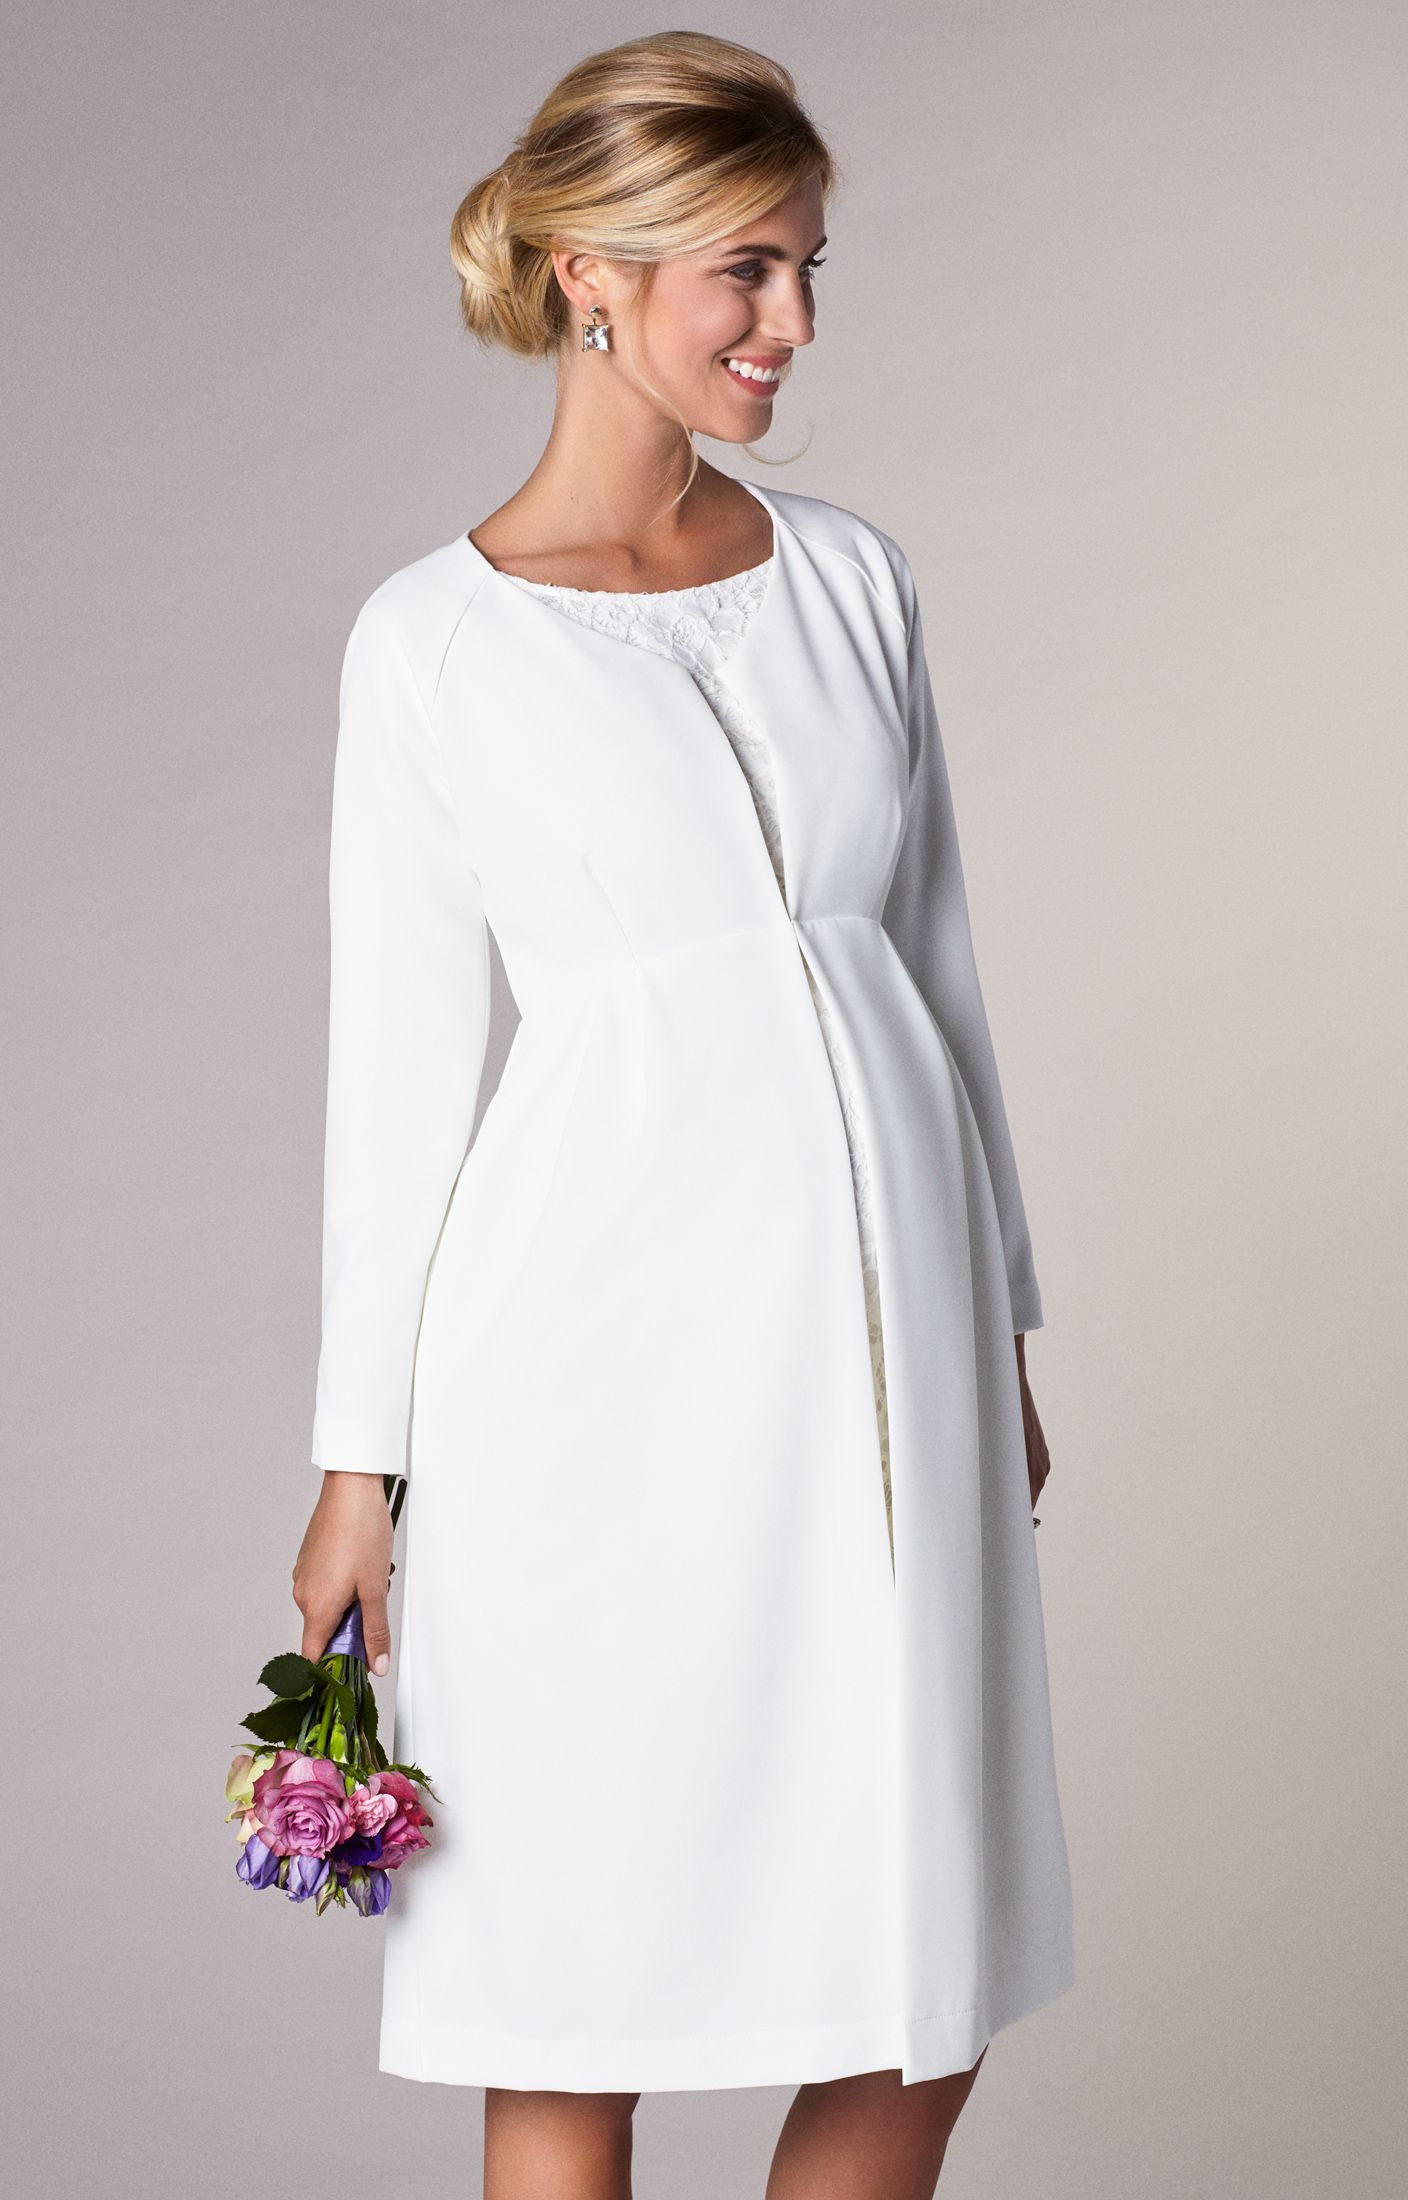 3e88538a6c399 Our new Christie Dress Coat is wistfully classic with a boat neckline,  three quarter sleeves and just a hint of gentle stretch.